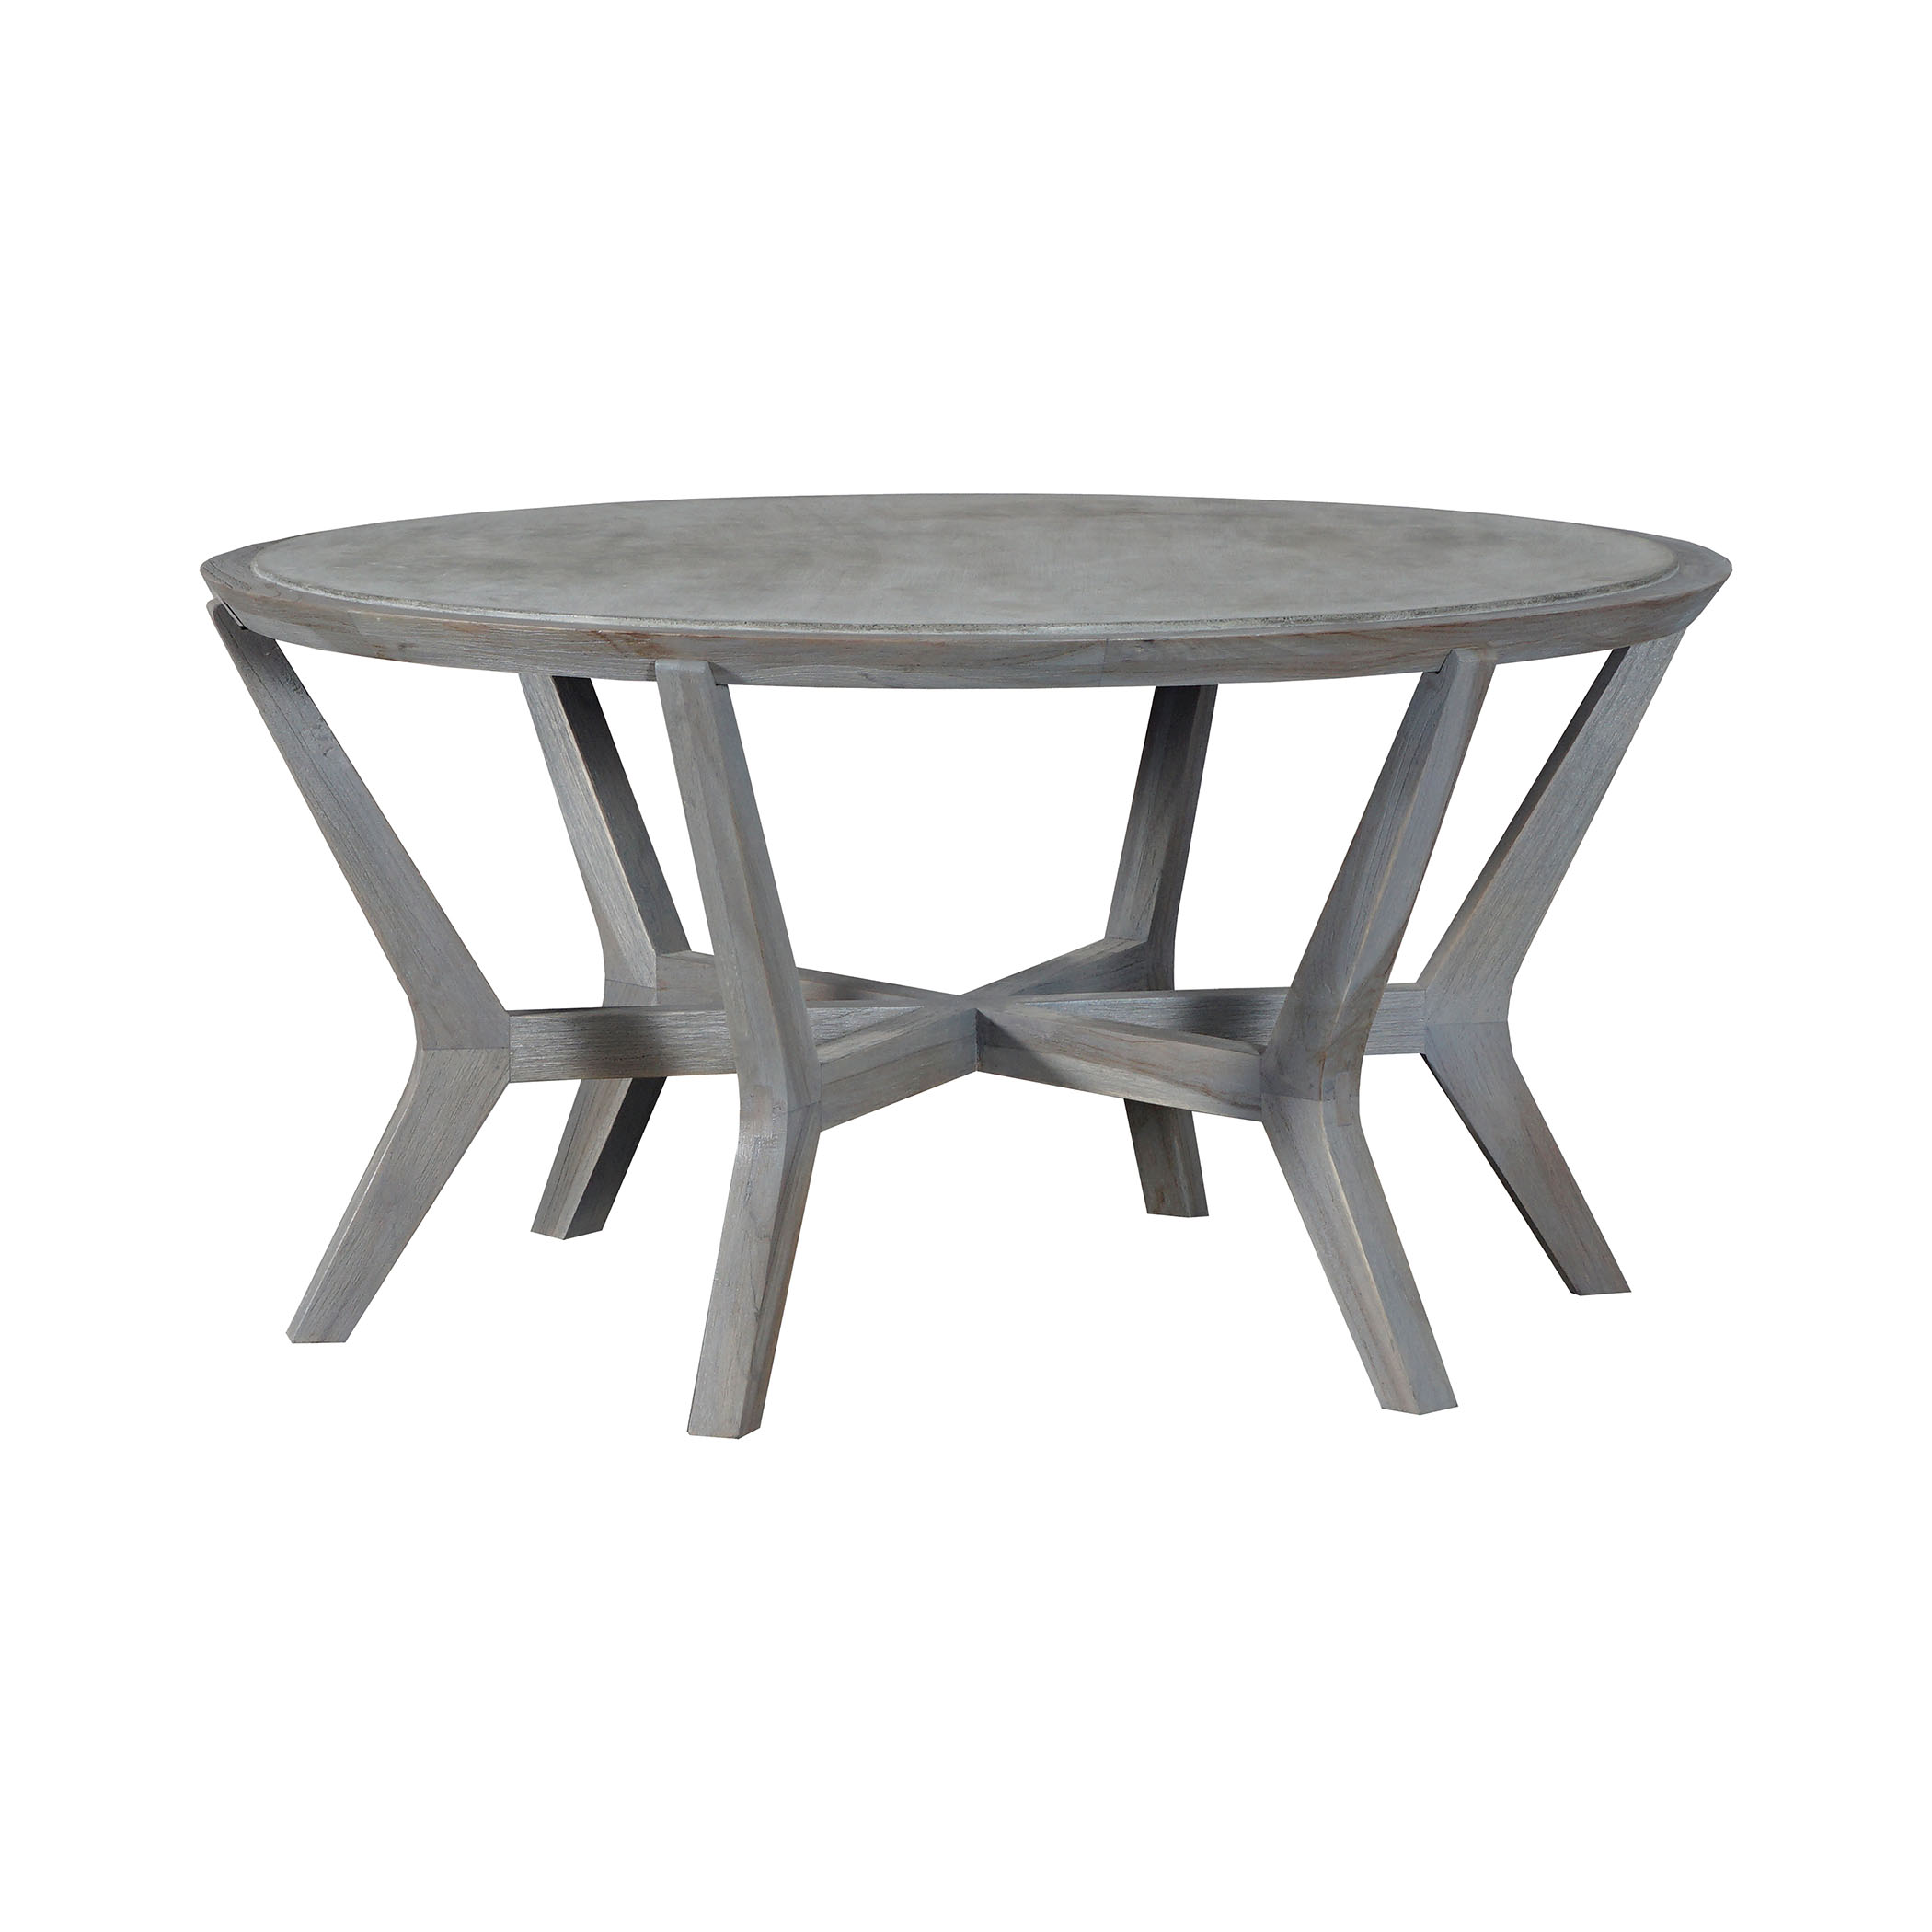 Brazos Cocktail Table in Concrete | Elk Home